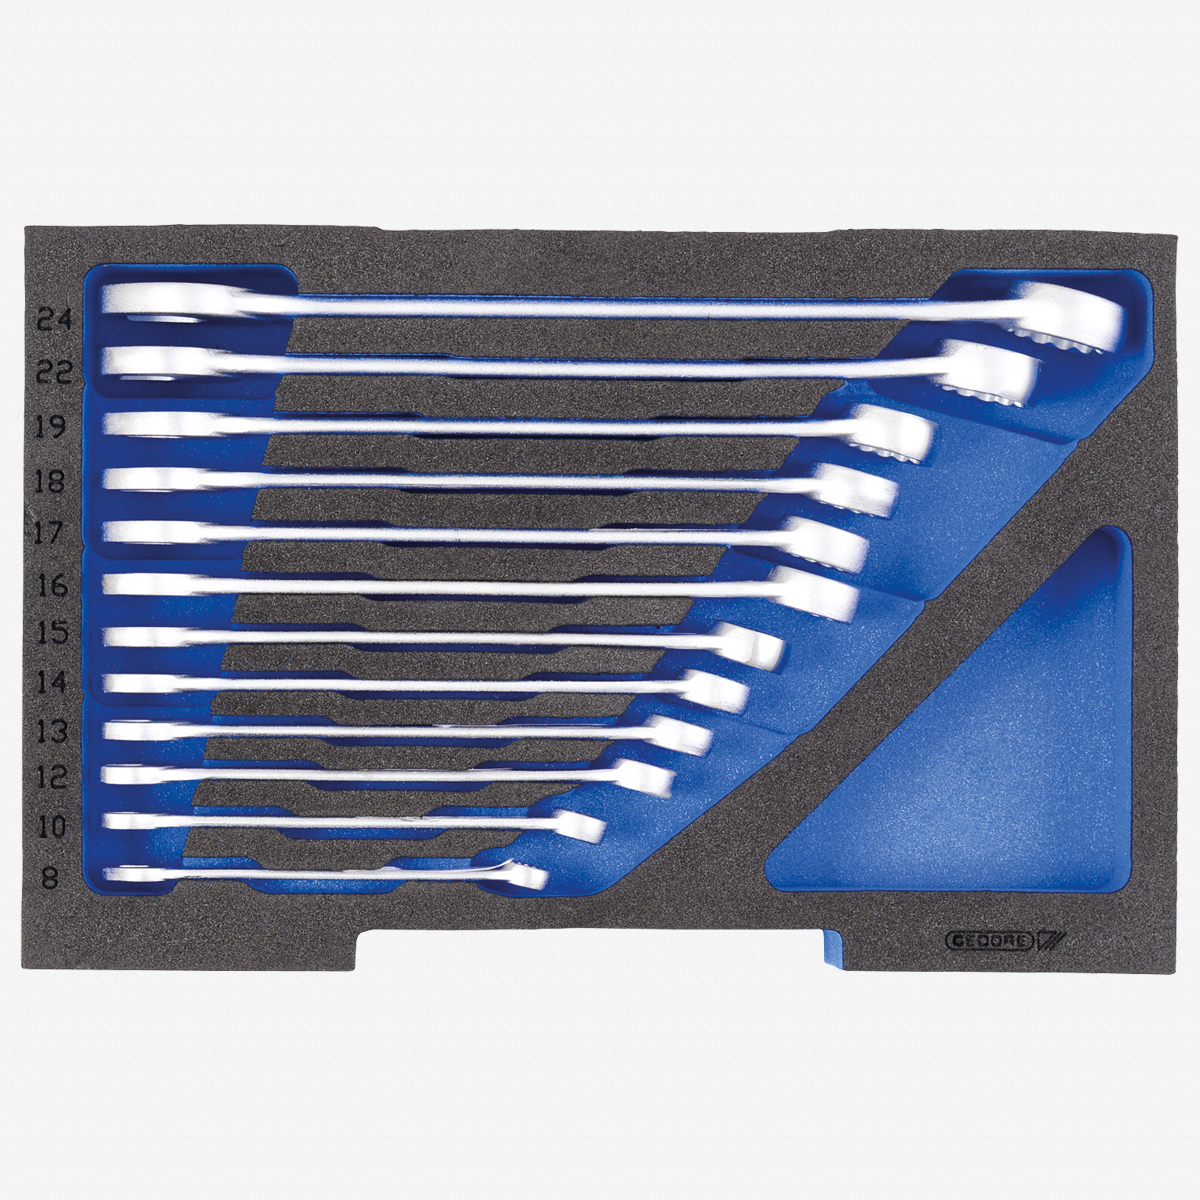 Gedore 1100 CT1-7 Combination spanner set, in 1/2 L-BOXX 136 Module - KC Tool